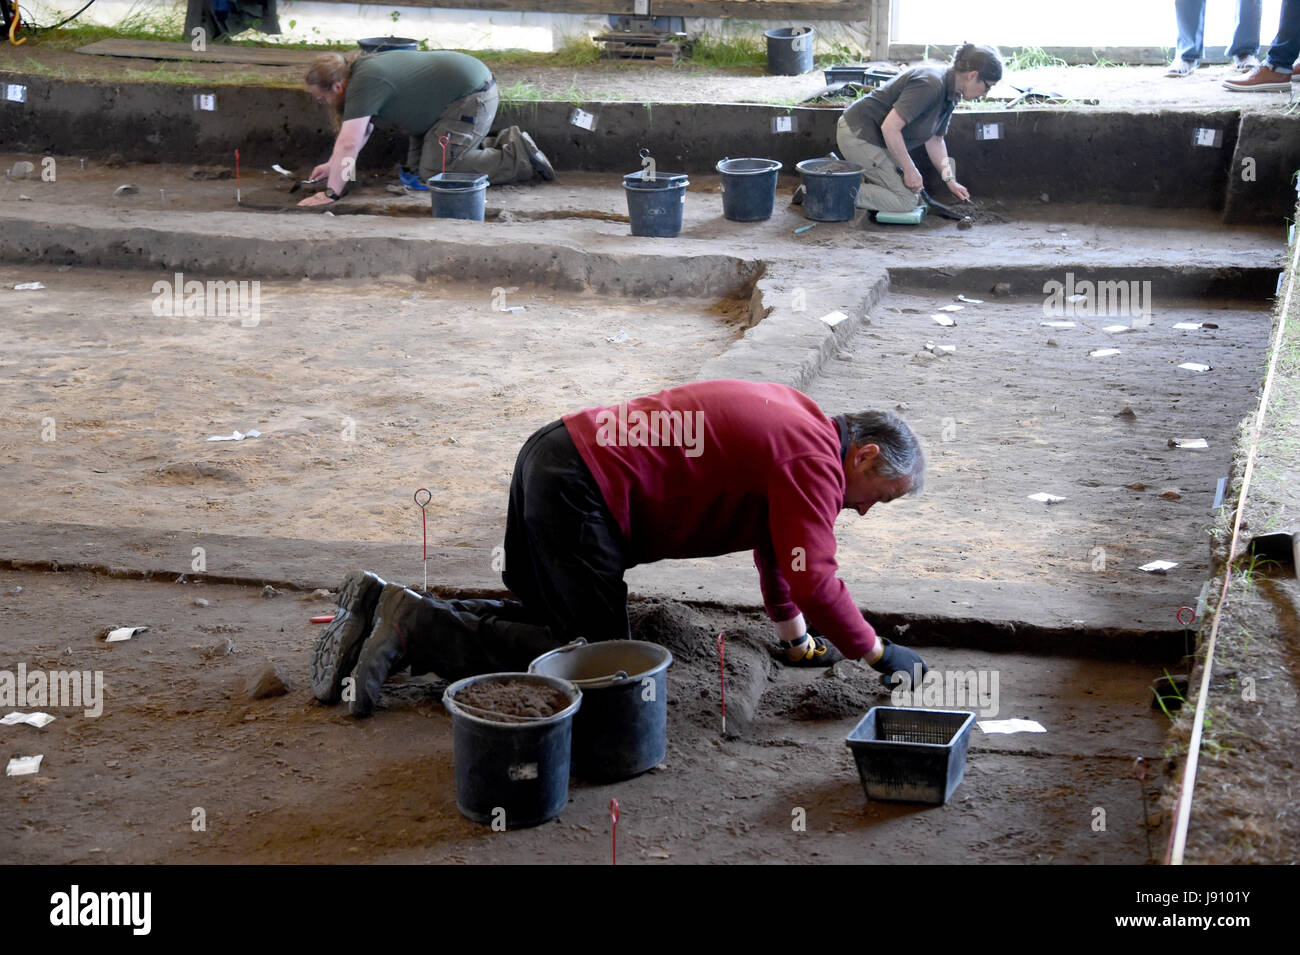 Excavation helpers work at an excavation site near the viking village Haithabu in Busdorf, Germany, 31 May 2017. - Stock Image